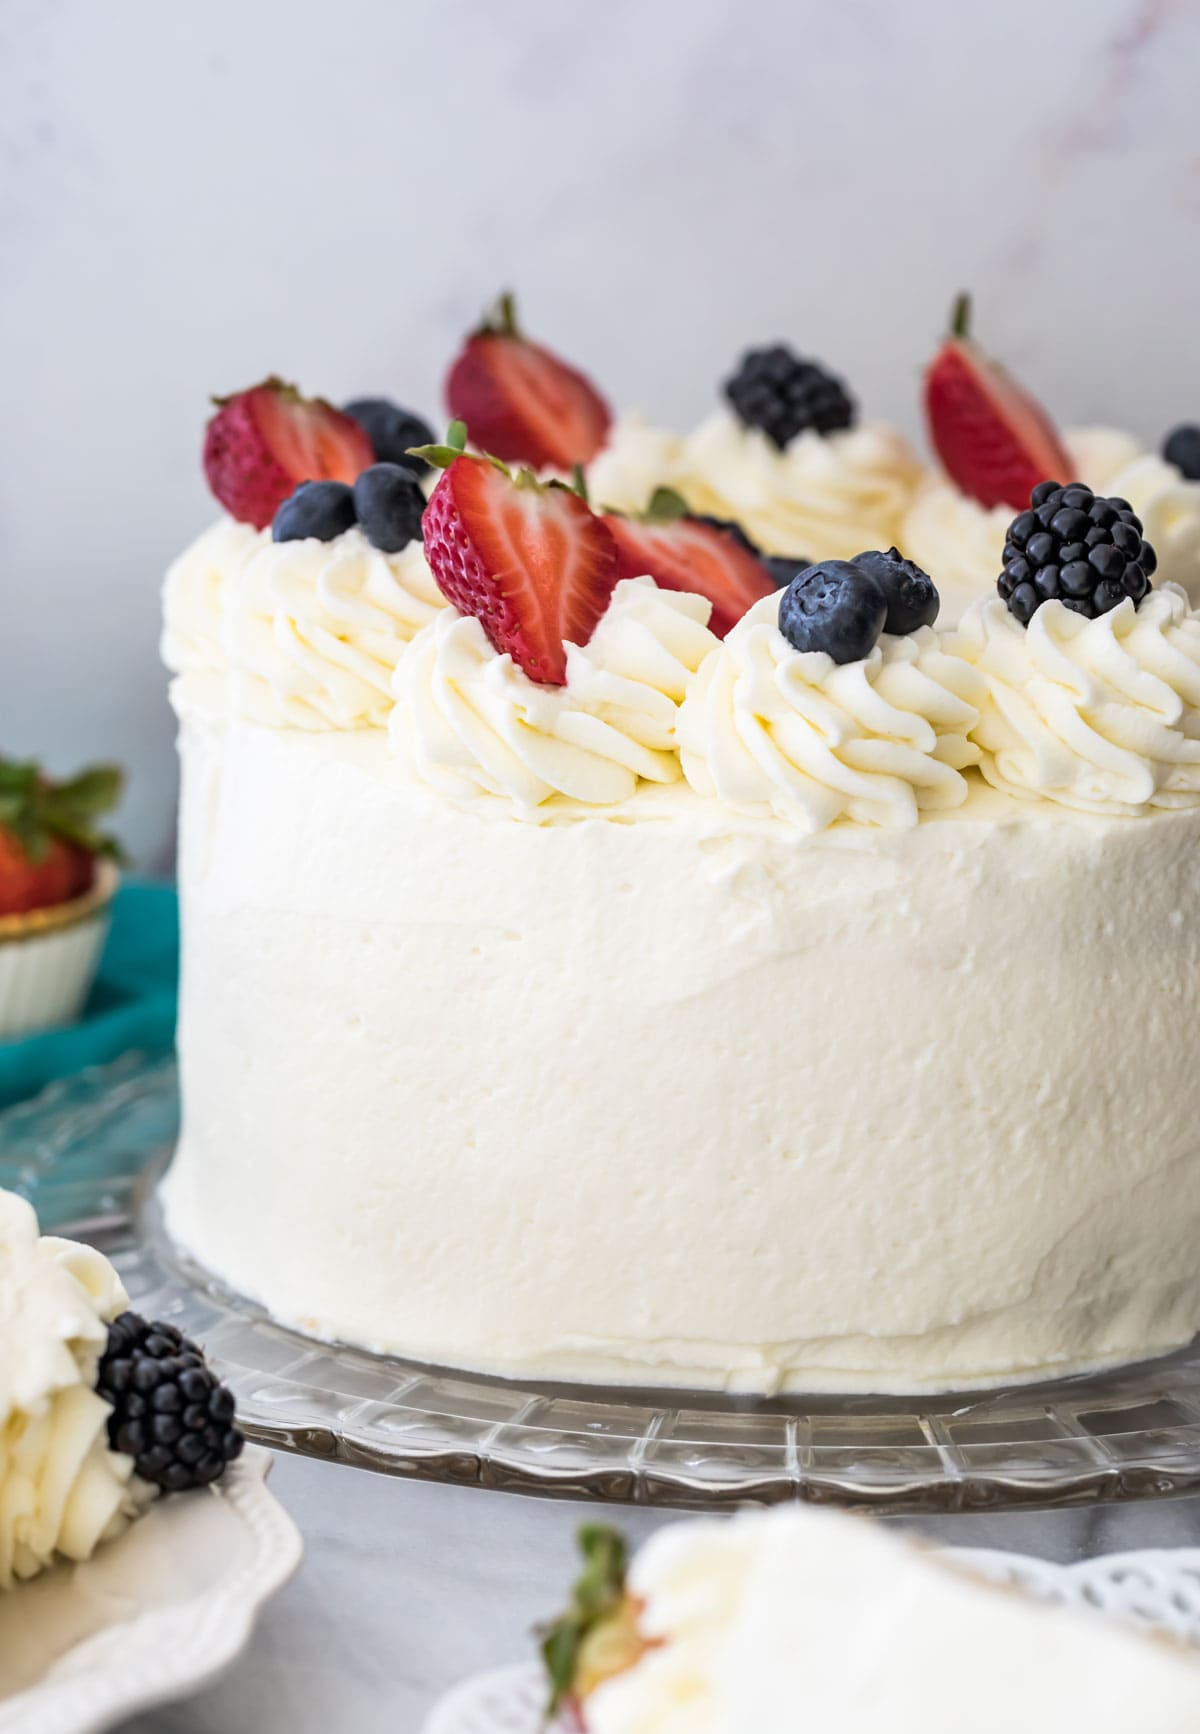 Chantilly cake on a glass platter, topped with fresh fruit